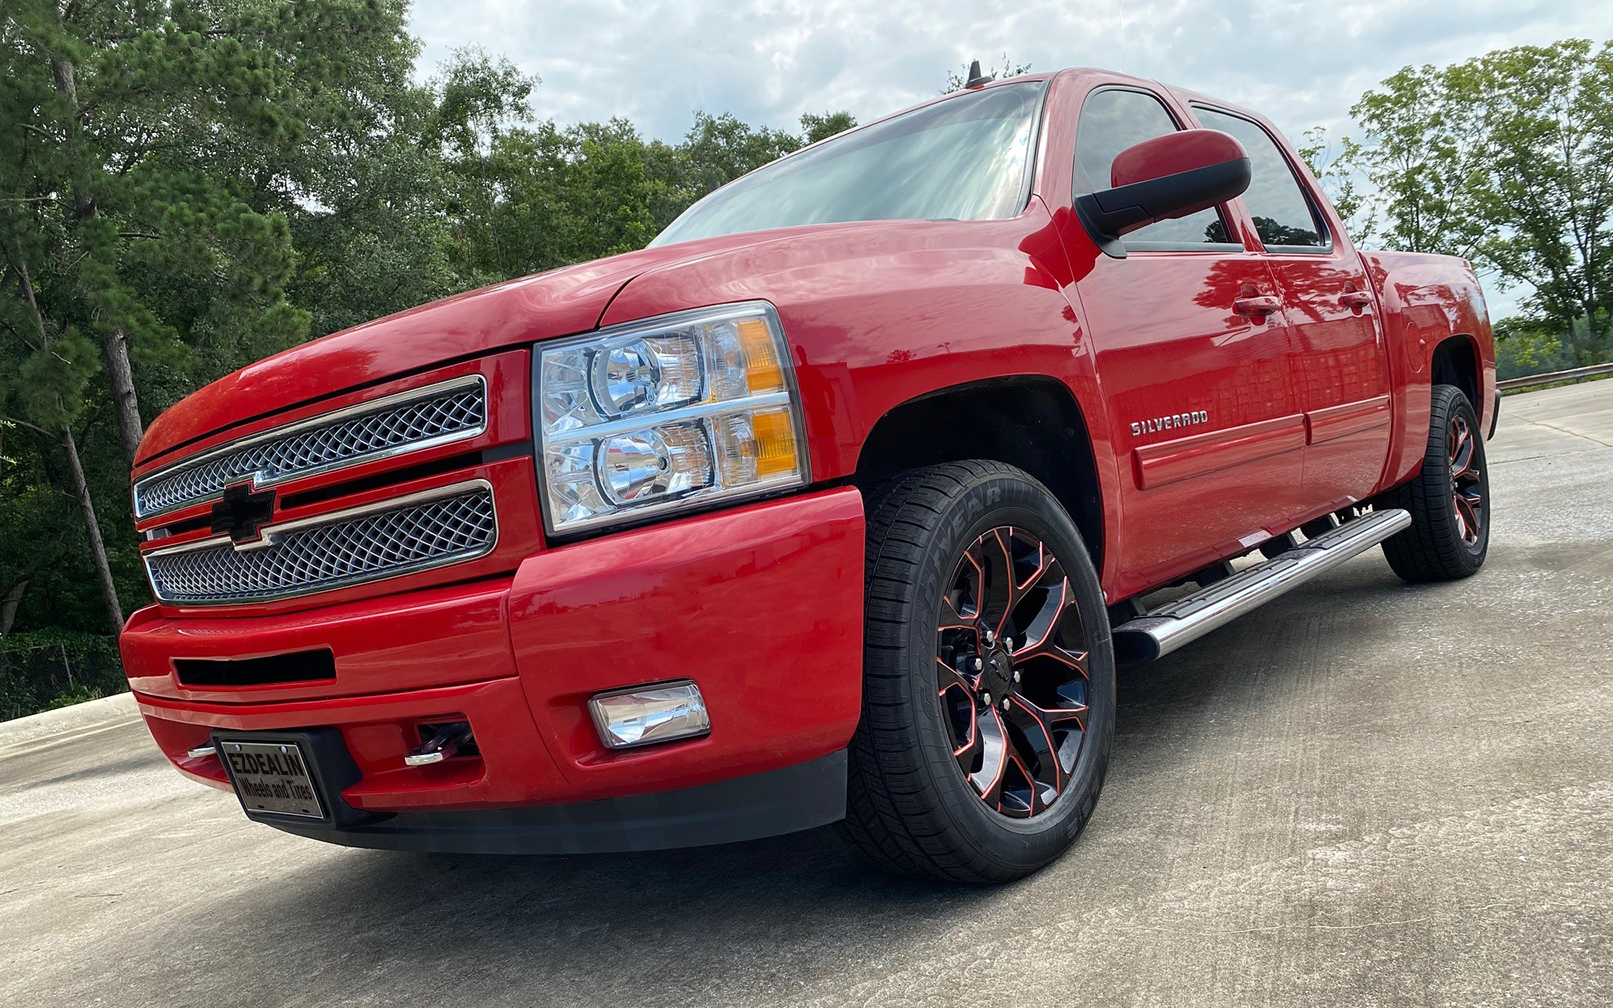 Ezdealin Wheels And Tires For Chevy Gmc Ford And Dodge Trucks And Suvs